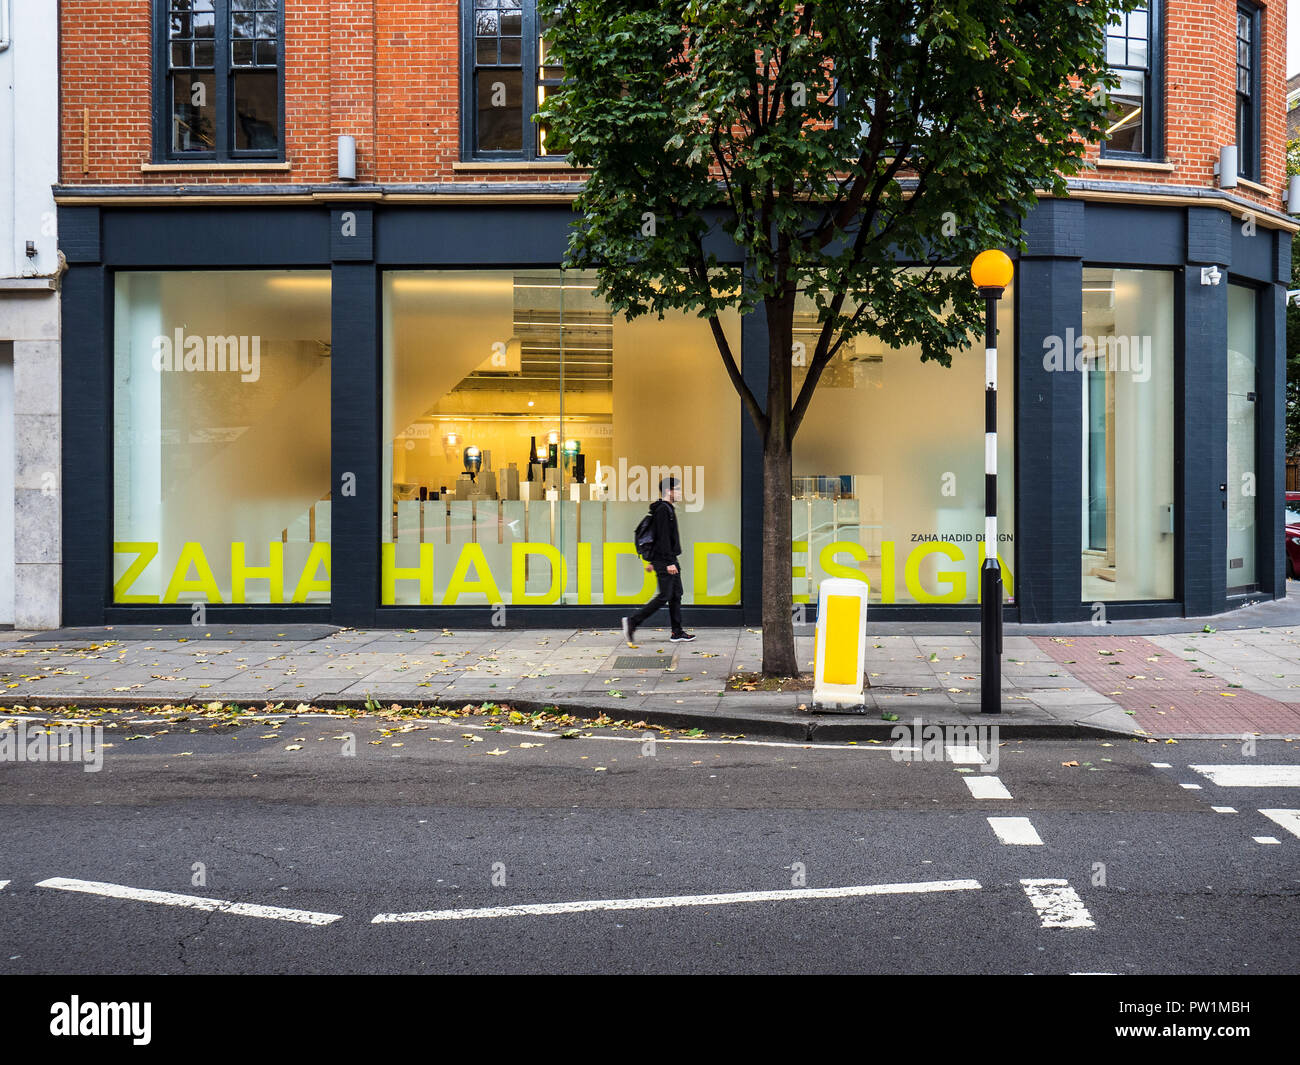 Zaha Hadid Design Store in Goswell Road, Clerkenwell, London Stock Photo